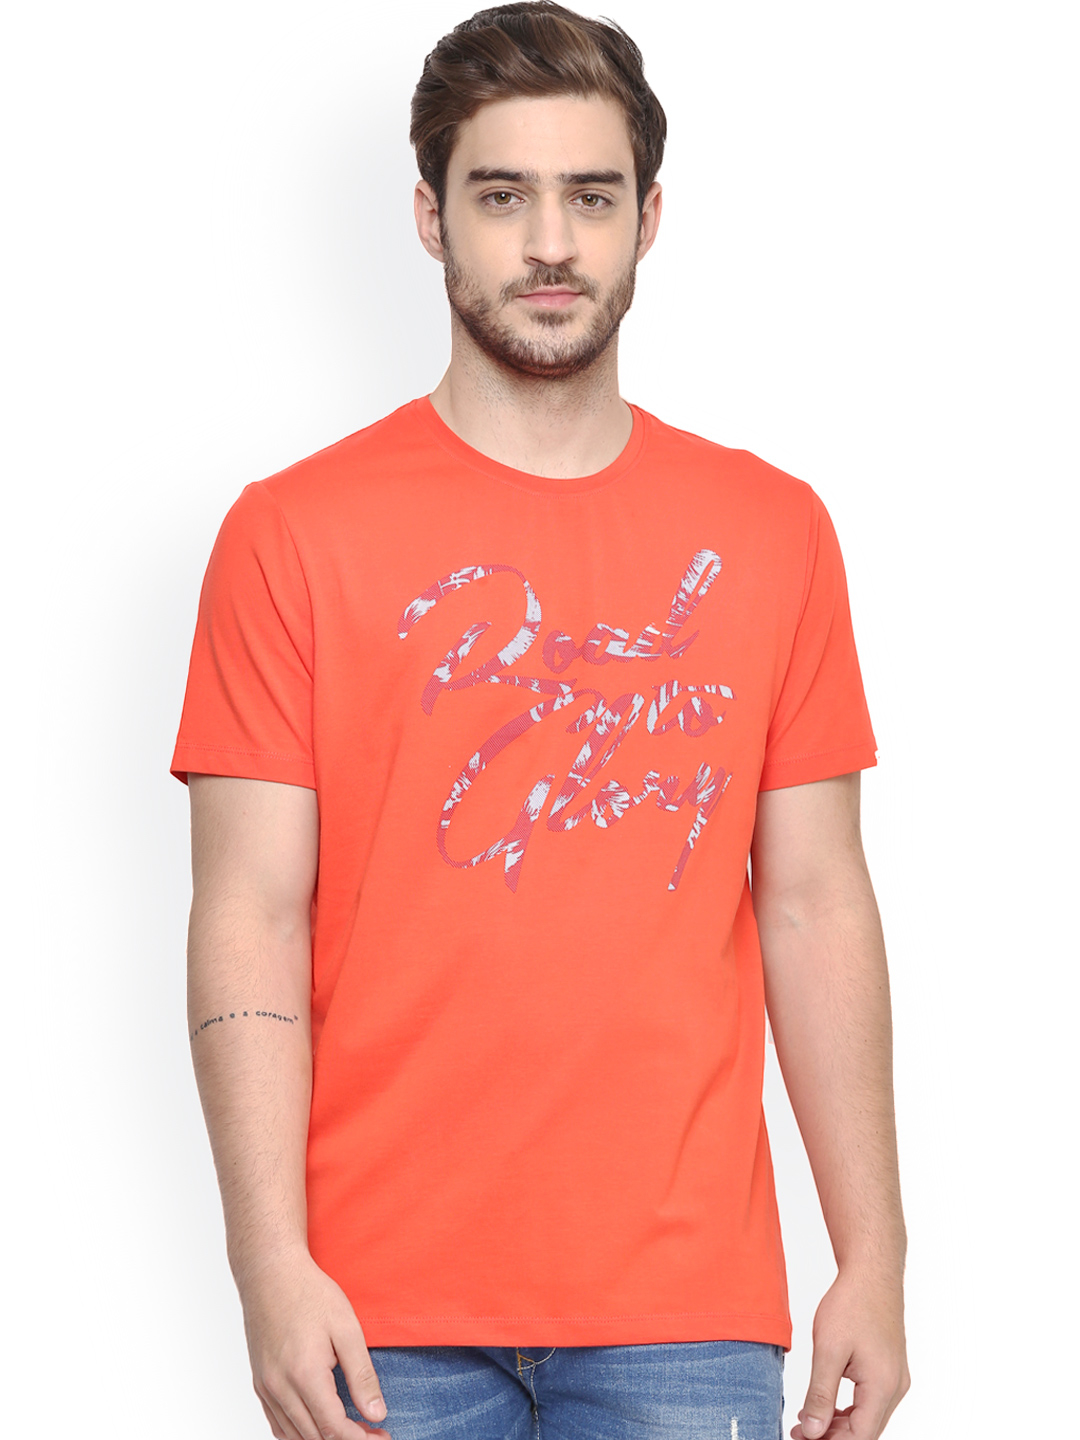 Spykar printed orange slim fit cotton t shirt g3 mts4811 for Fitted t shirt printing